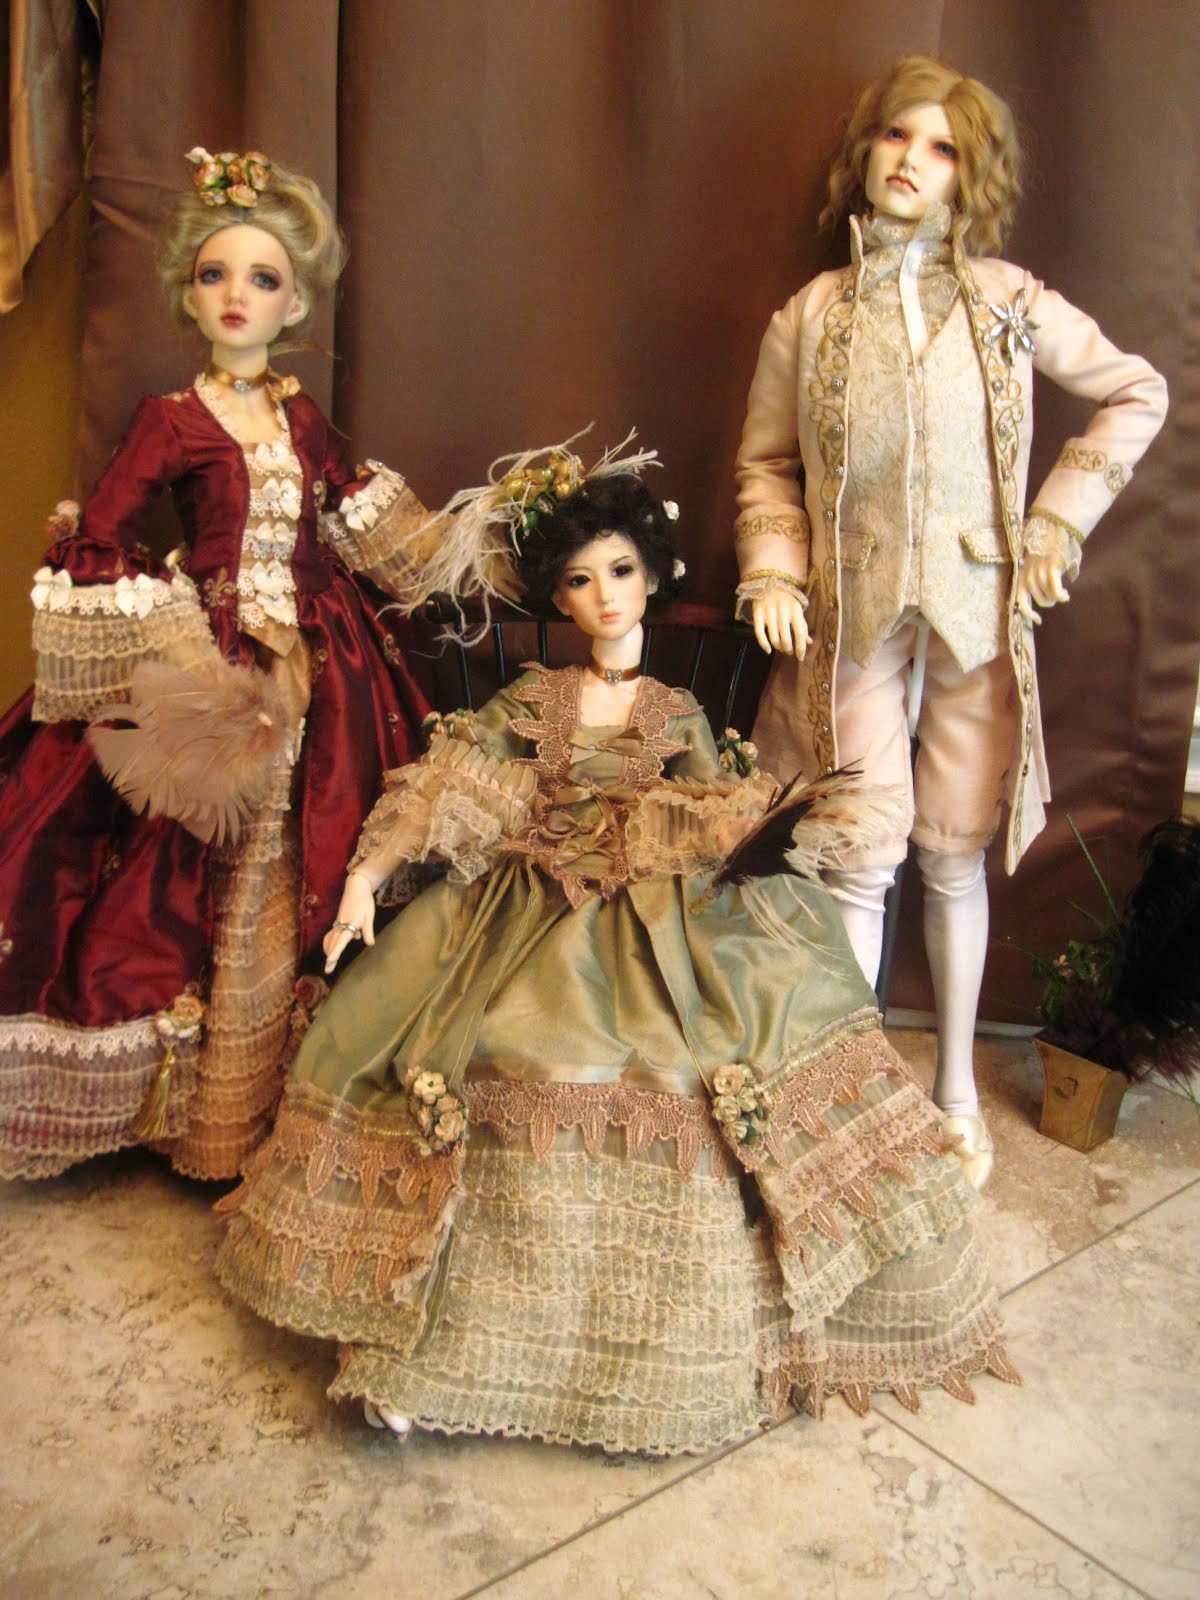 Bjd 39 s and cloth dolls by faithyhopey rococo period clothing for French rococo period